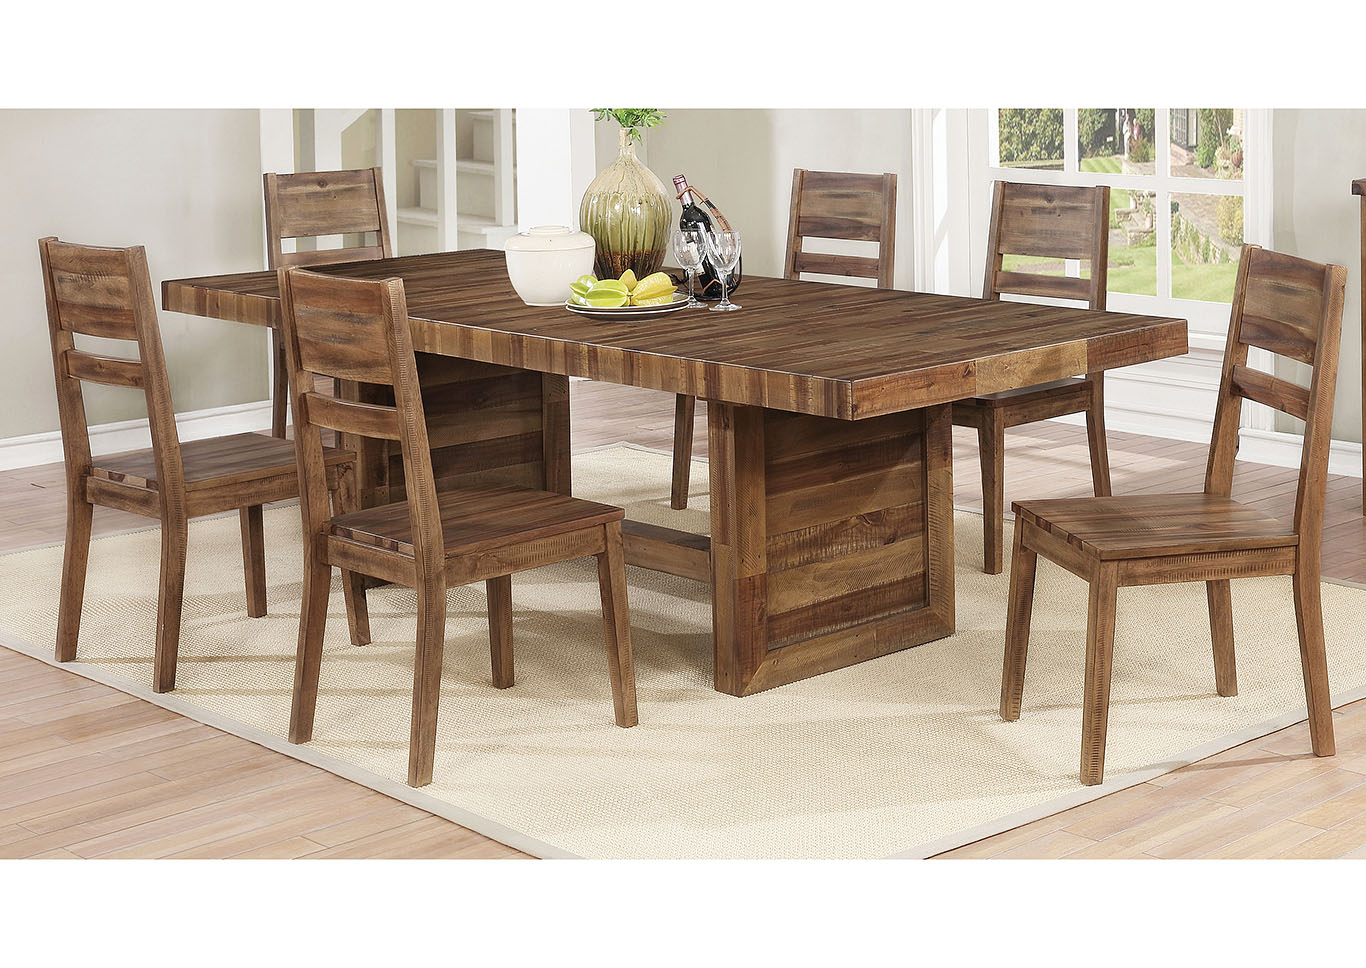 Tucson Rustic Varied Natural Dining Table,Coaster Furniture